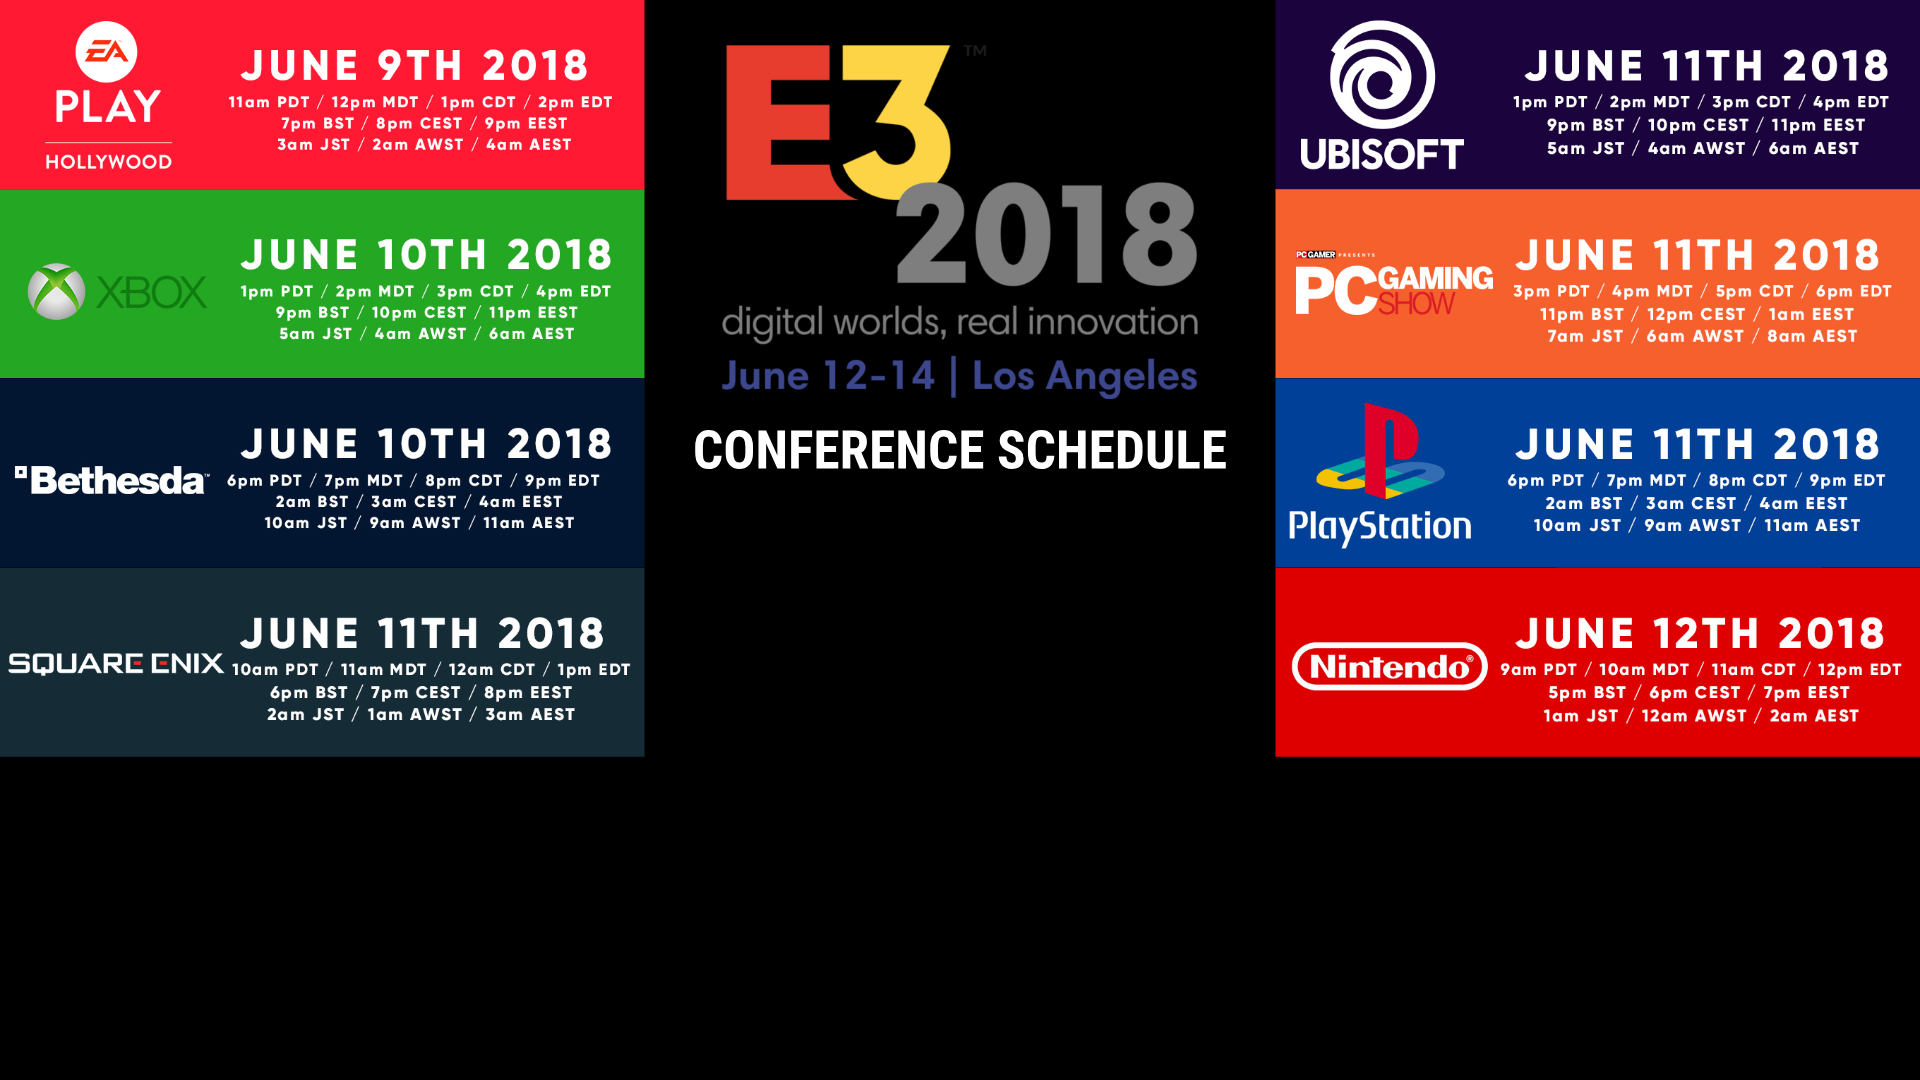 2Pm Bst To Aest e3 2018 predictions & discussion thread   resetera